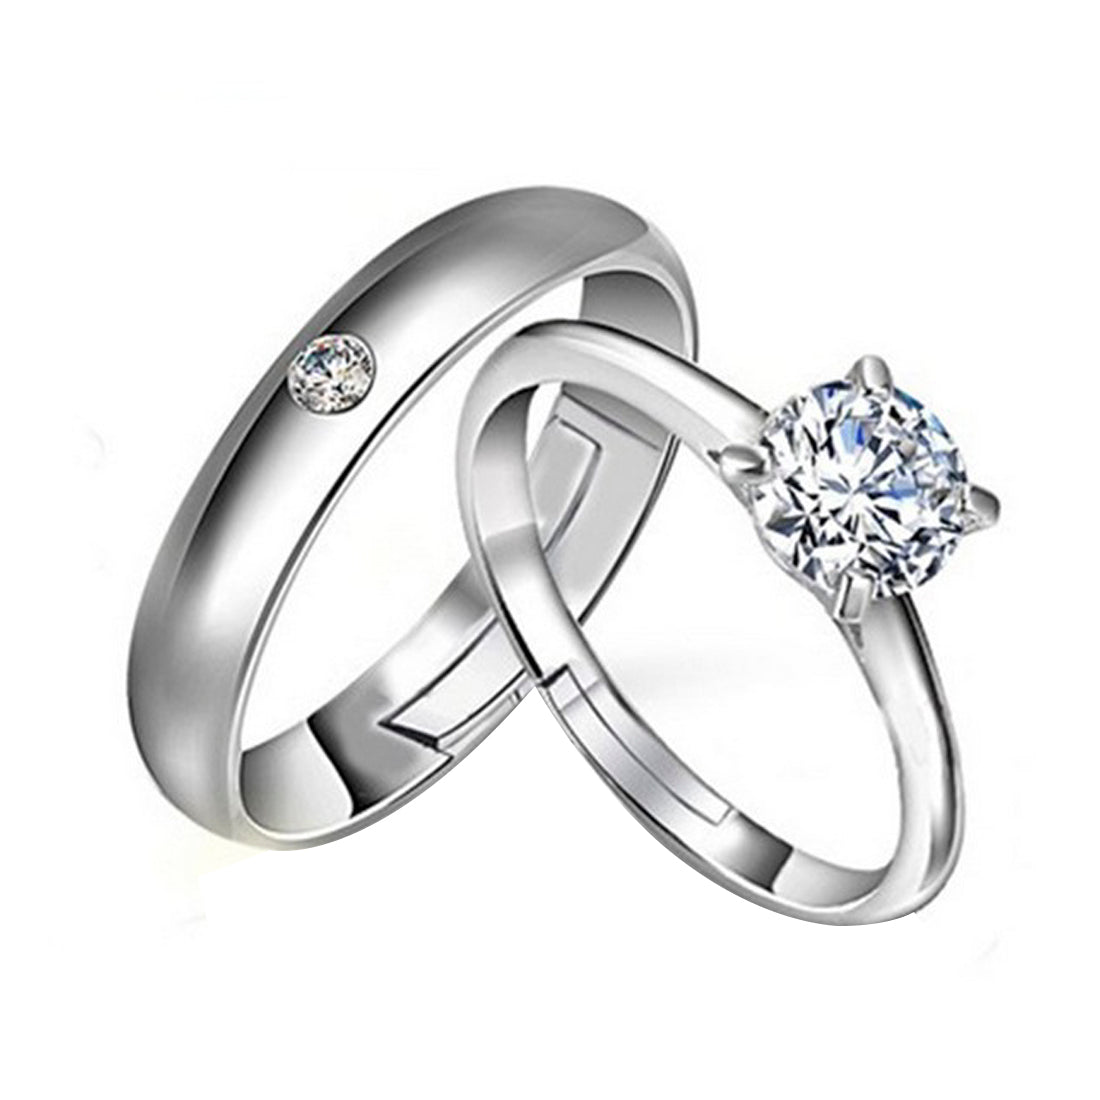 Forever Love Couple Ring-THE BLING STORES1-Finger Ring